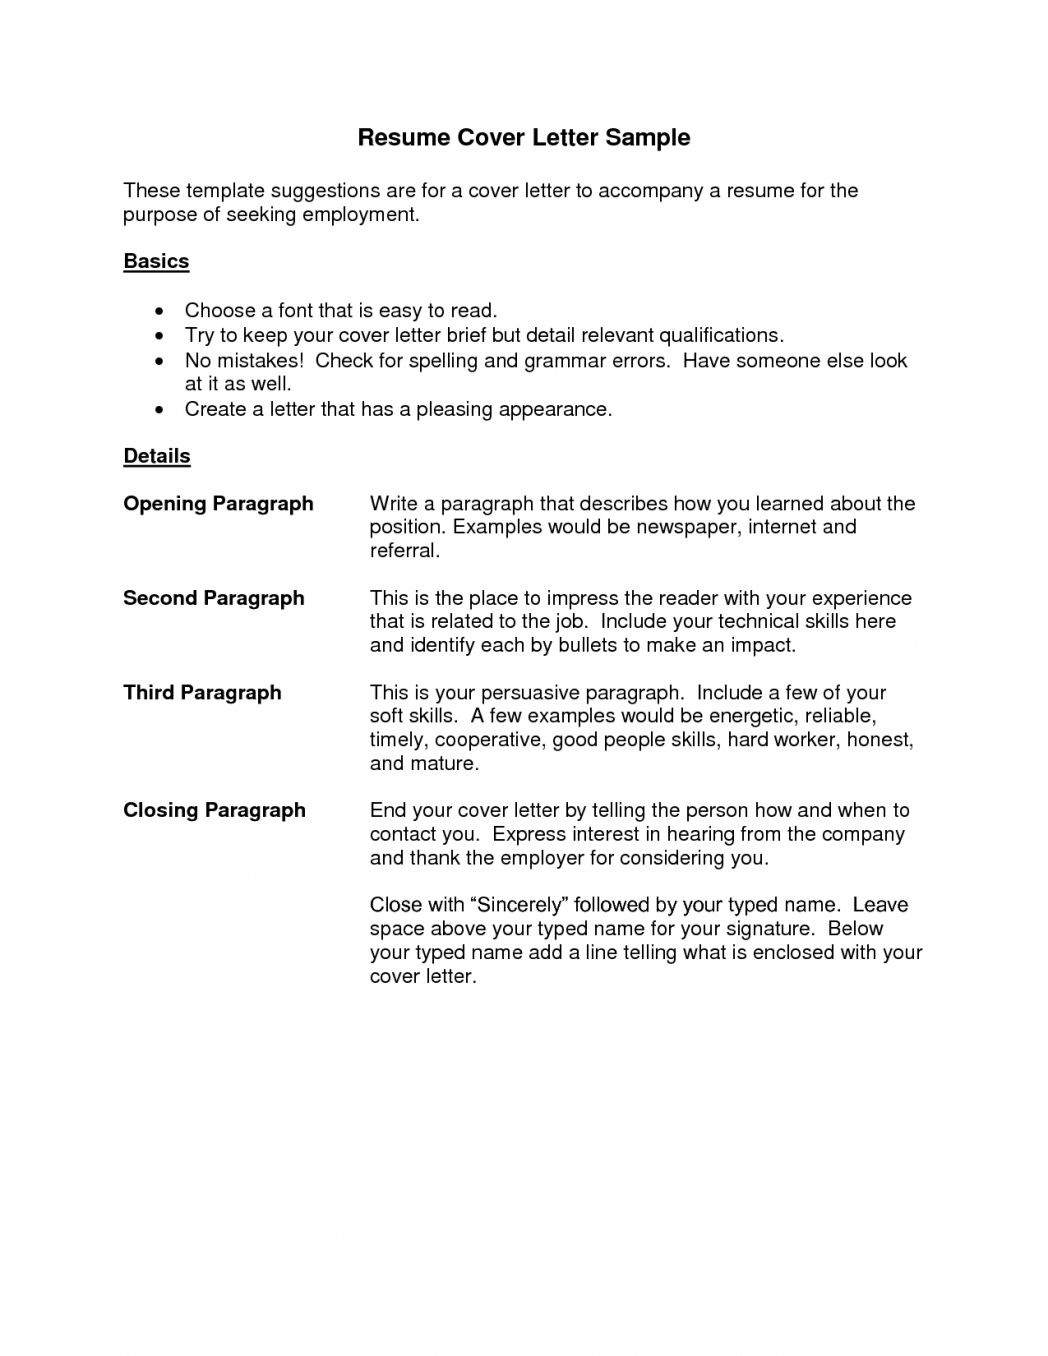 General Resume Cover Letter Template Format Download Pdf How